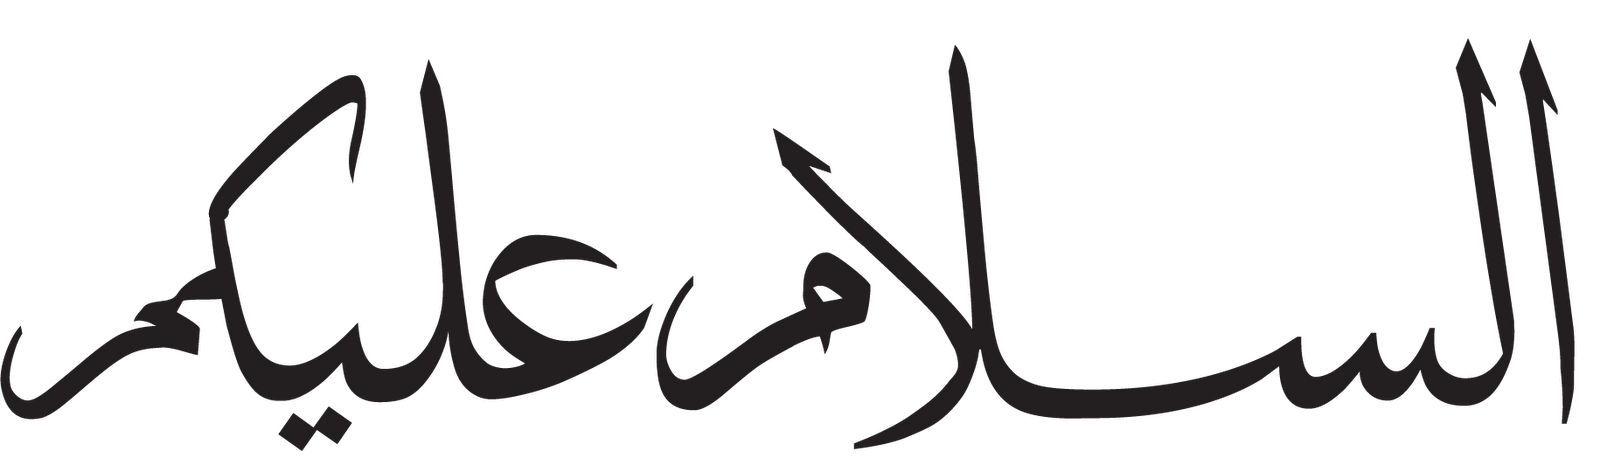 ... also Free Transparent Alphabet. on transparent arabic writing